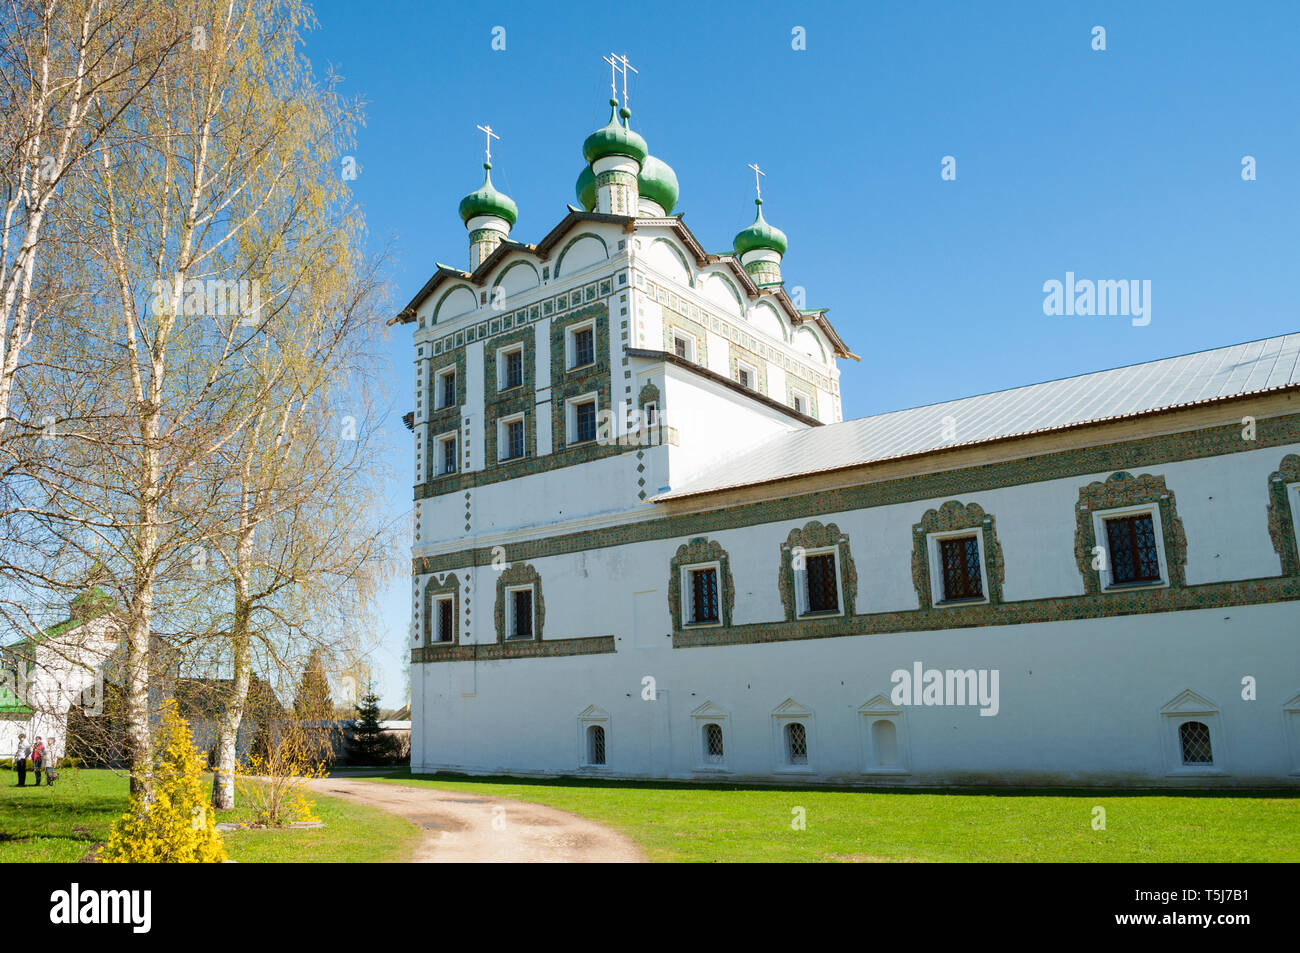 Veliky Novgorod, Russia. Church of St John the Evangelist with the refectory church of the Ascension, Nicholas Vyazhischsky stauropegic monastery - Stock Image